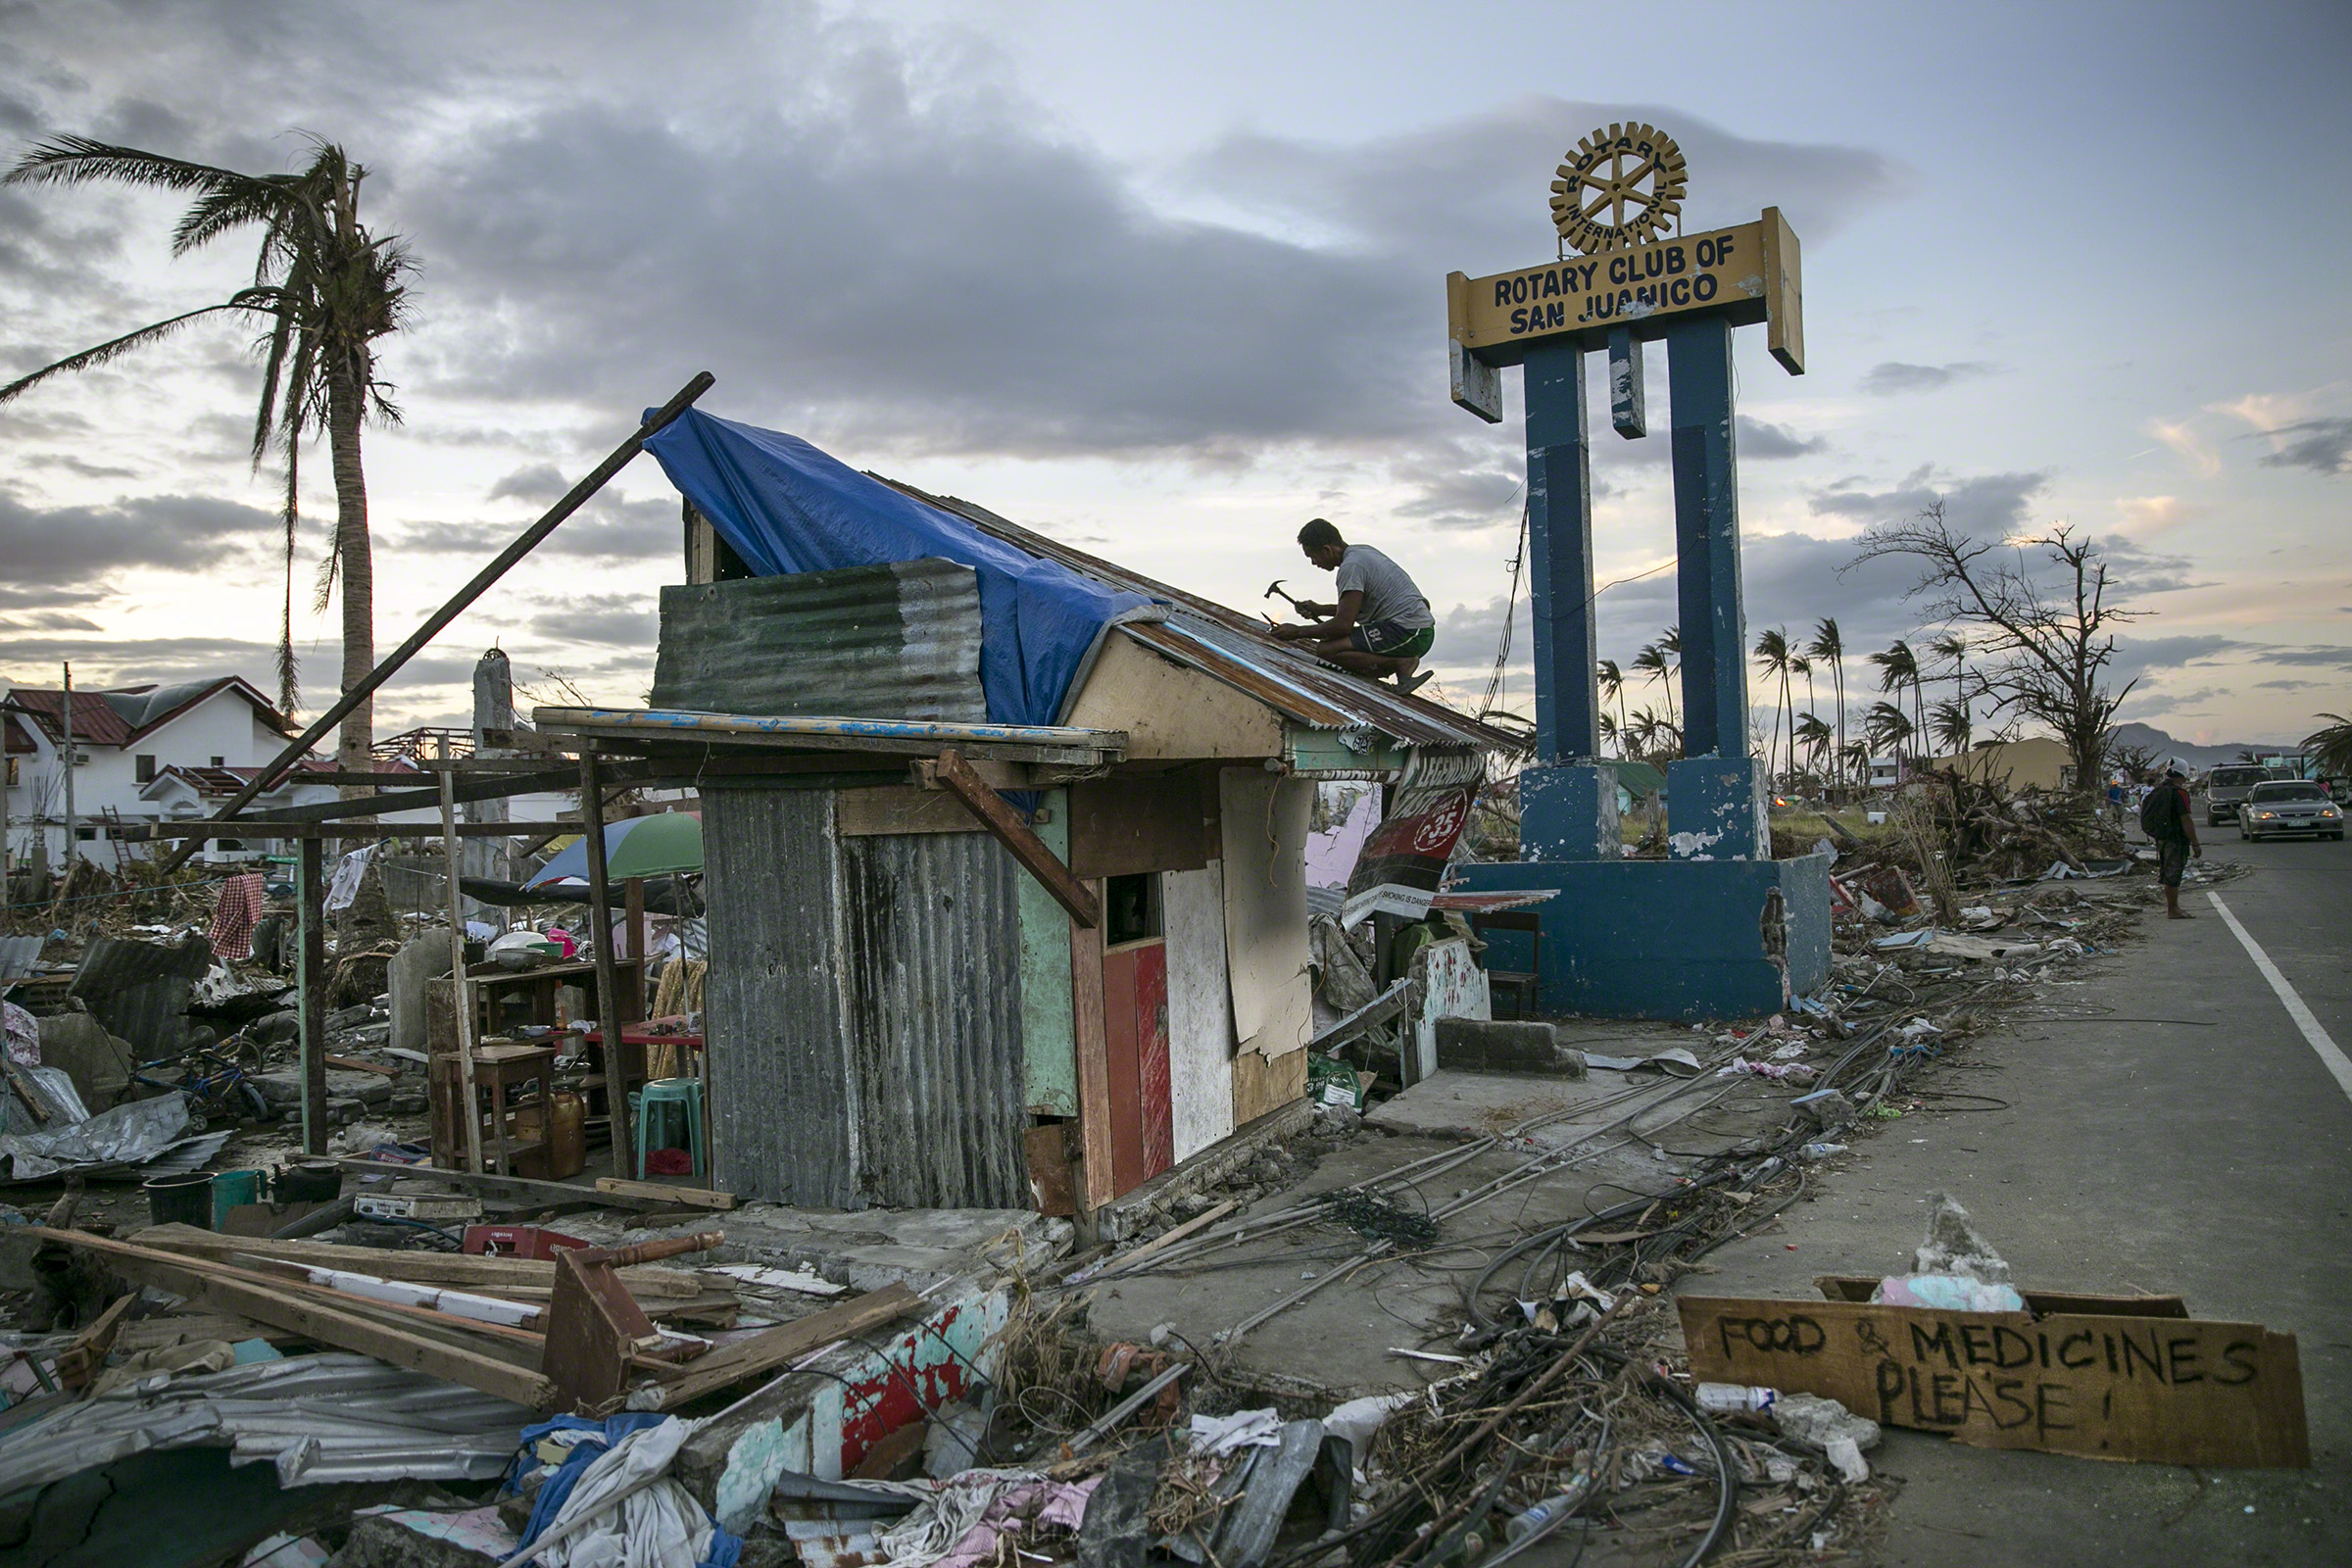 Tacloban, Philippines, 20 November 2013. A man hammers away amidst the destruction caused byTyphoon Haiyan (also known as Yolanda), which hit the islands of Leyte and Samar on 8 November 2013. Photo: Paula Bronstein/Reportage by Getty Images